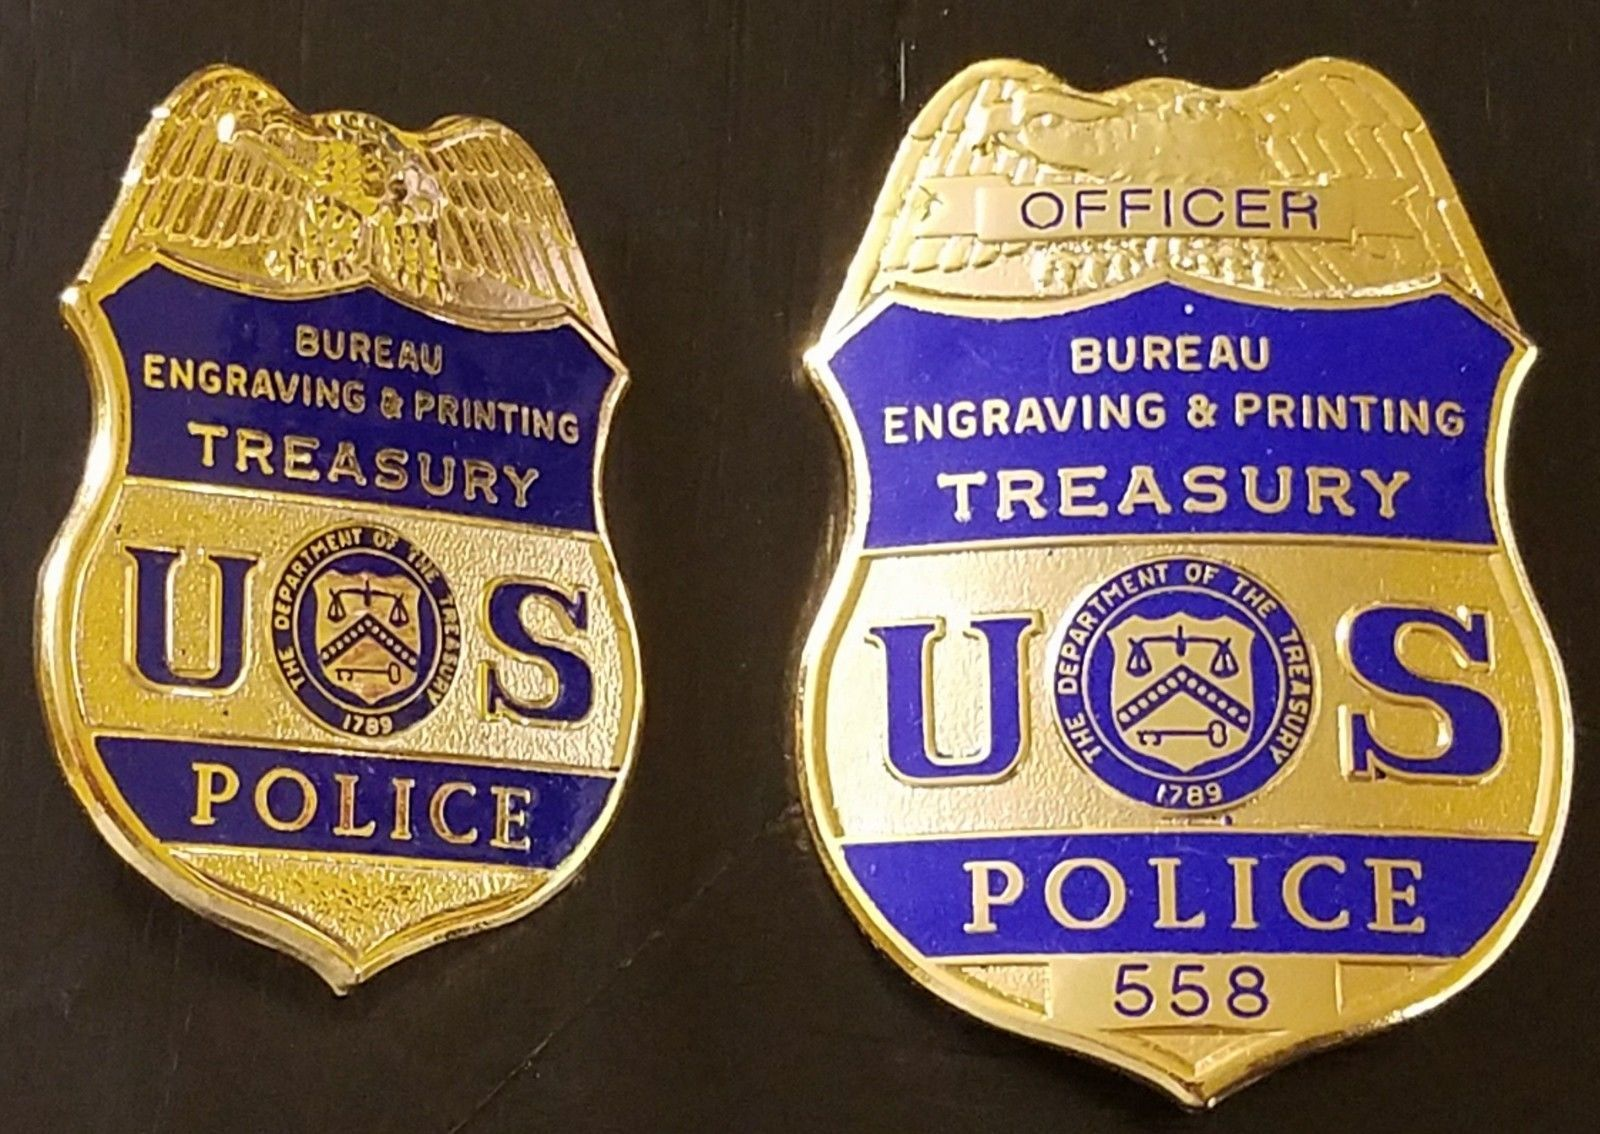 Officer, Bureau of Engraving & Printing Treasury Police (Hat and